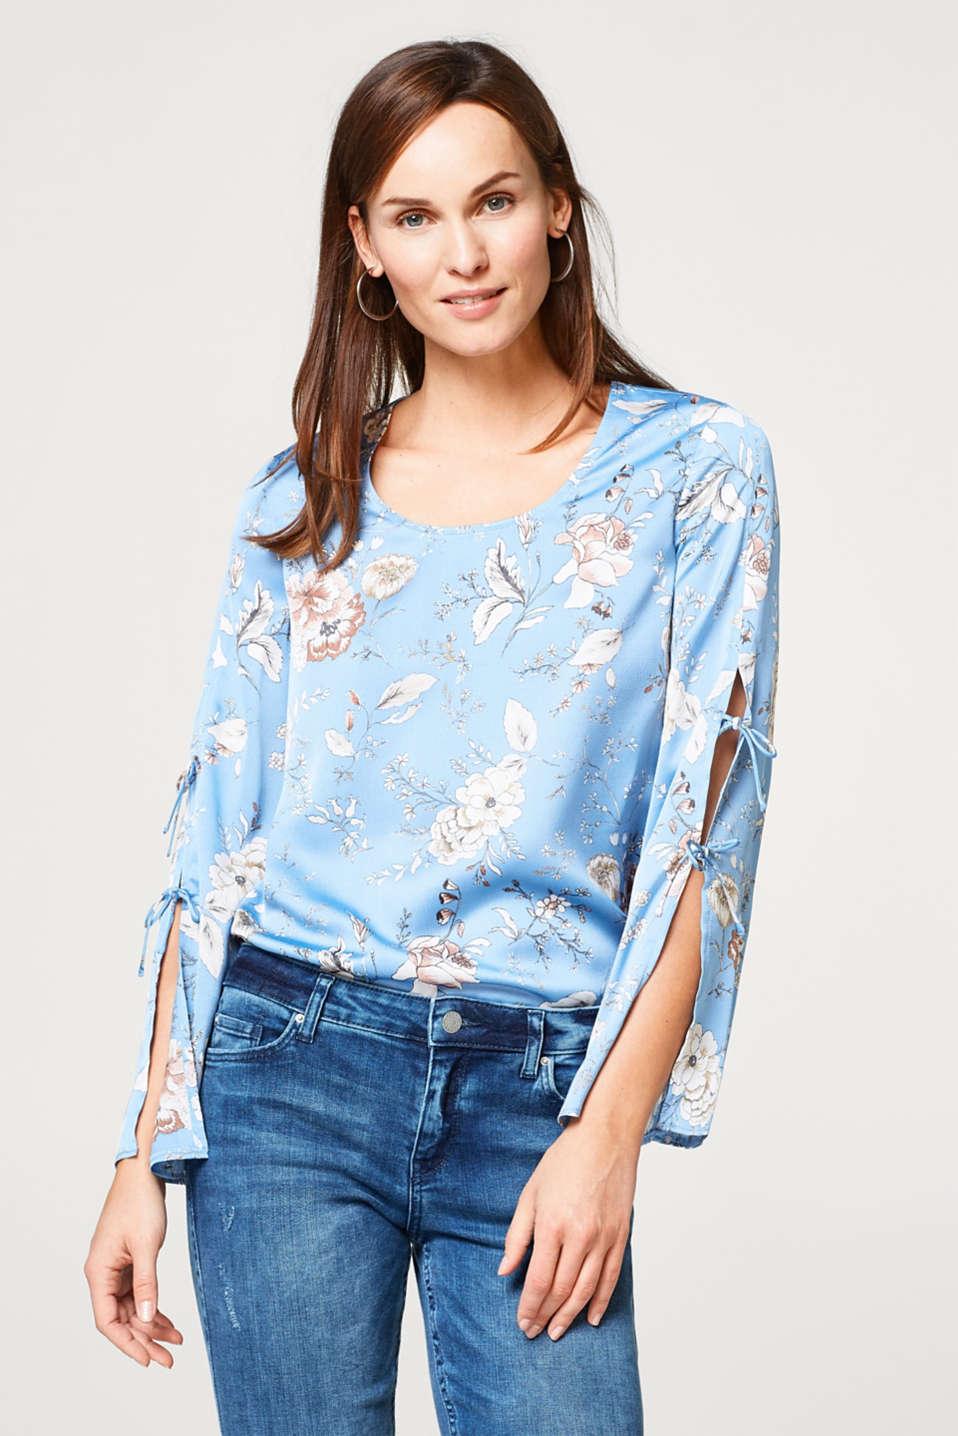 Esprit - Flowing printed blouse with tie-up sleeves